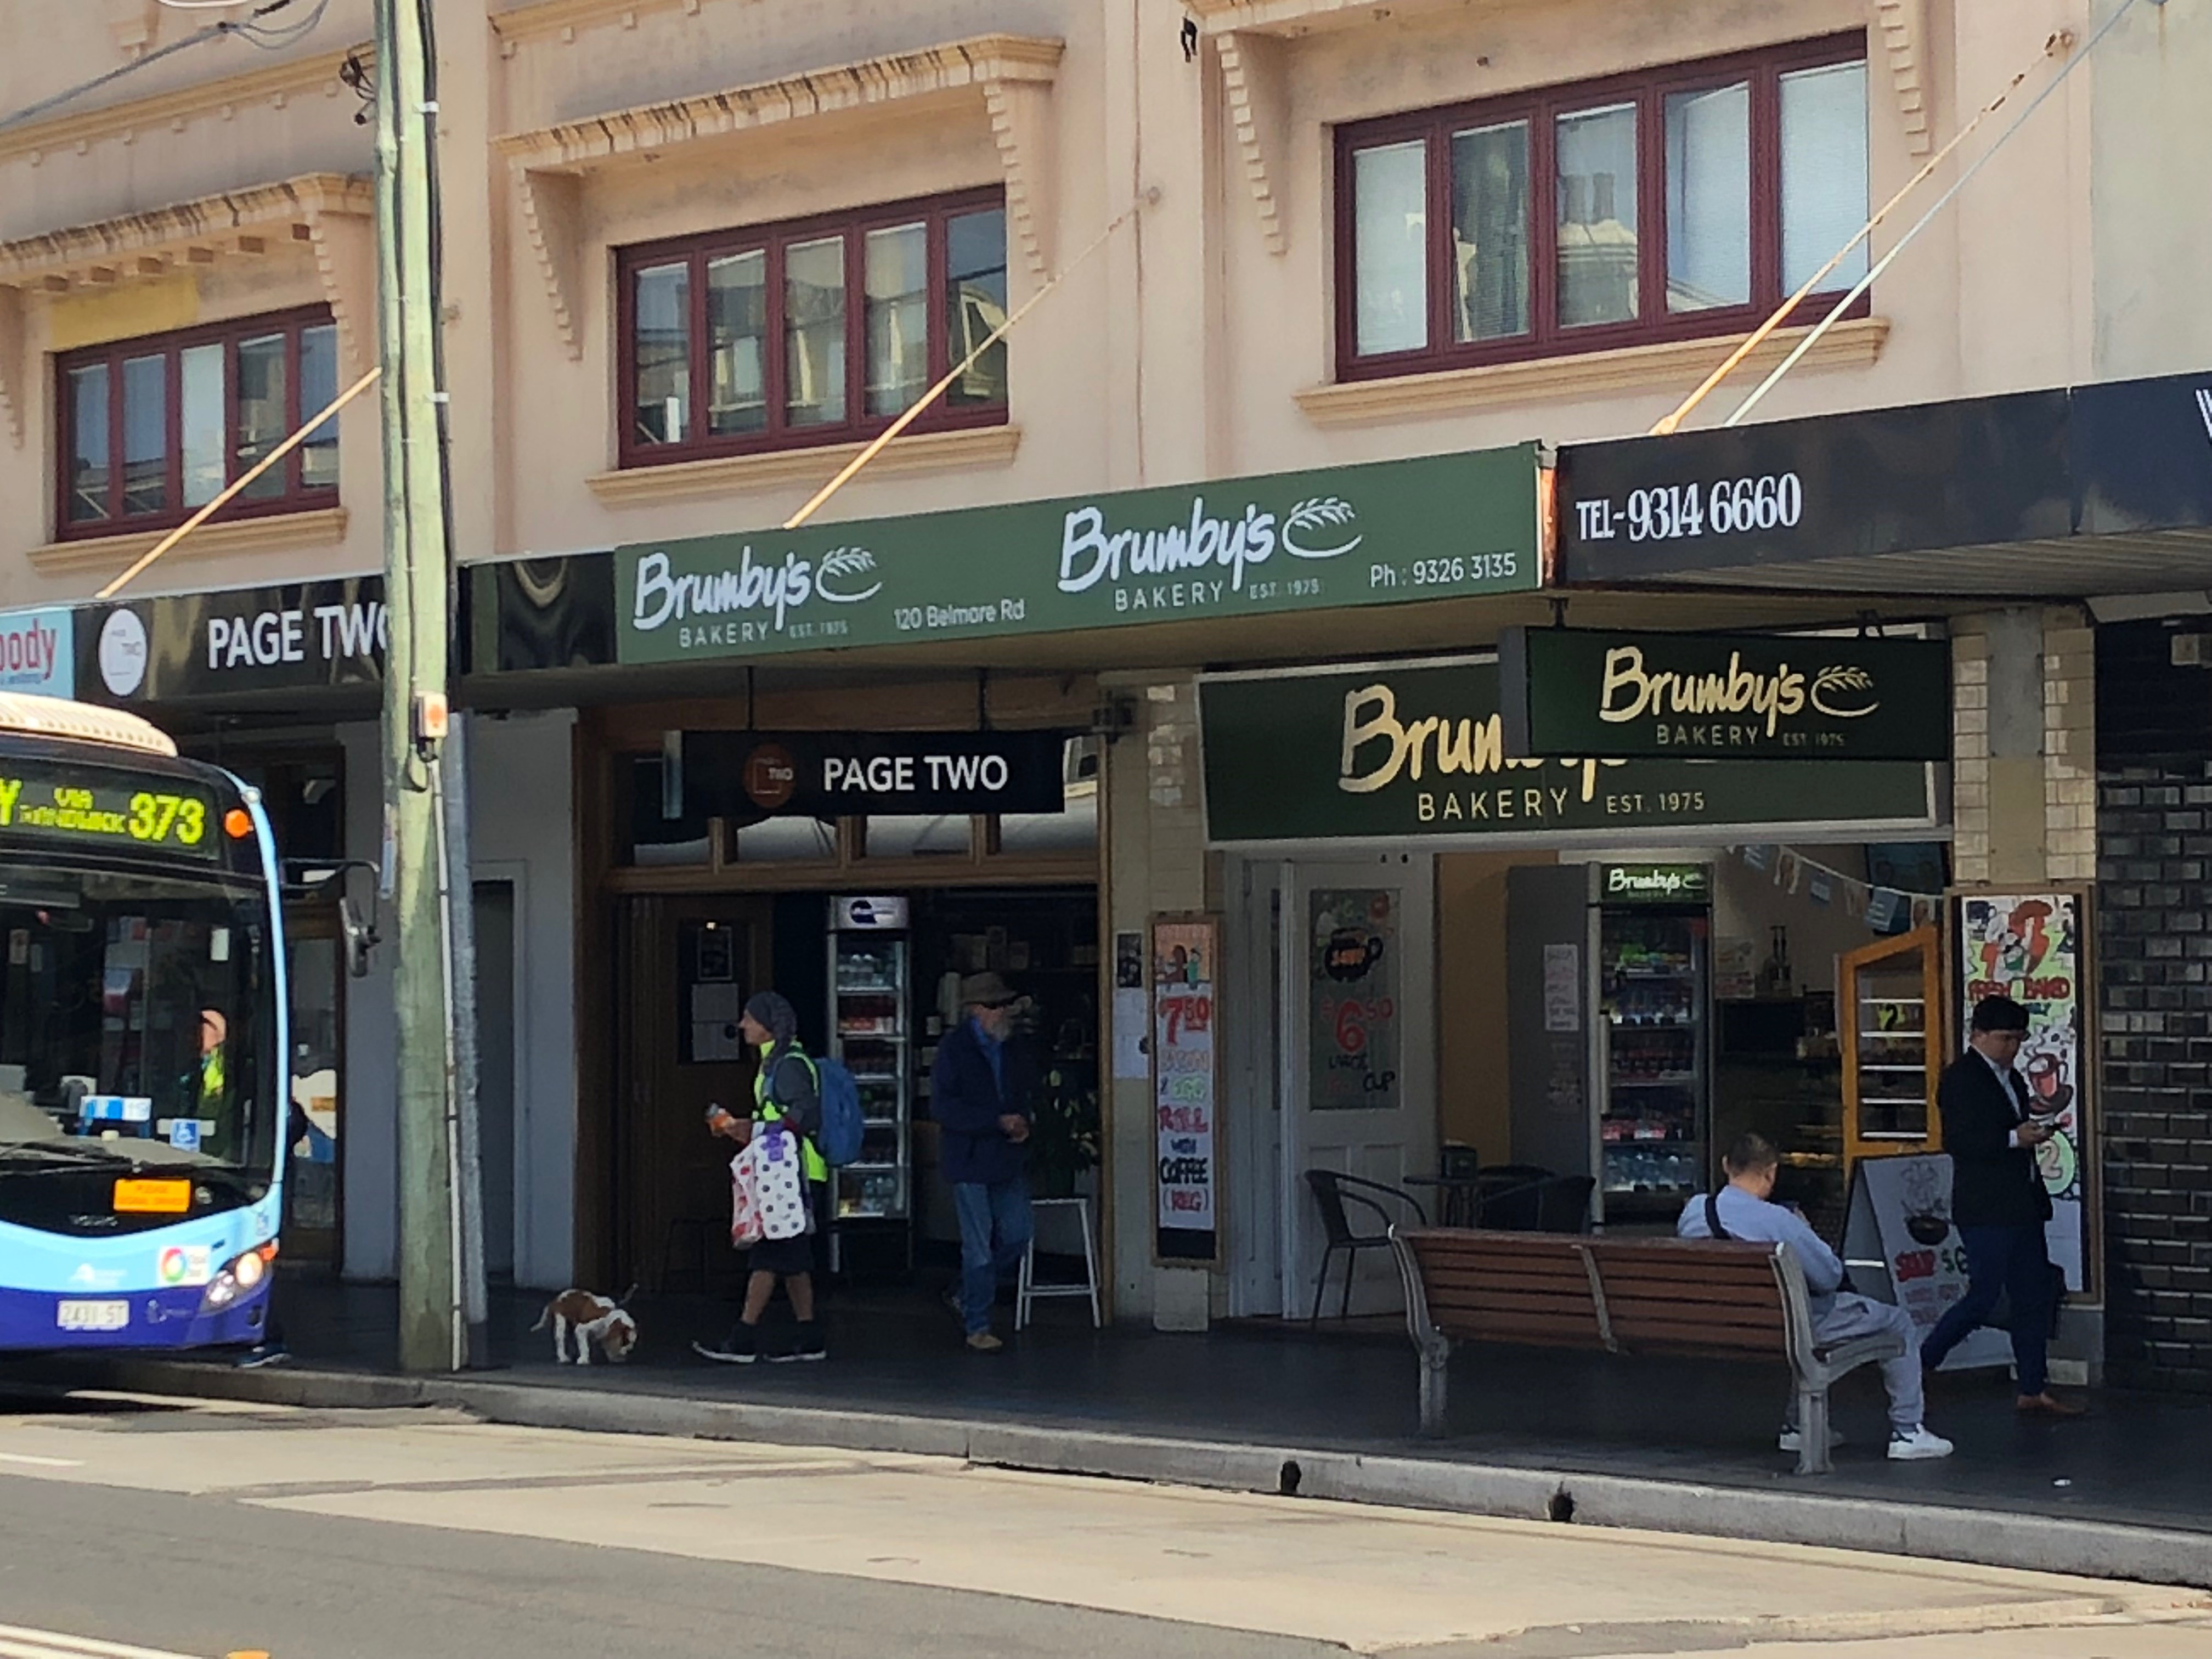 Established Brumby's Bakery Franchise Resale Opportunity NSW - Enquire today!